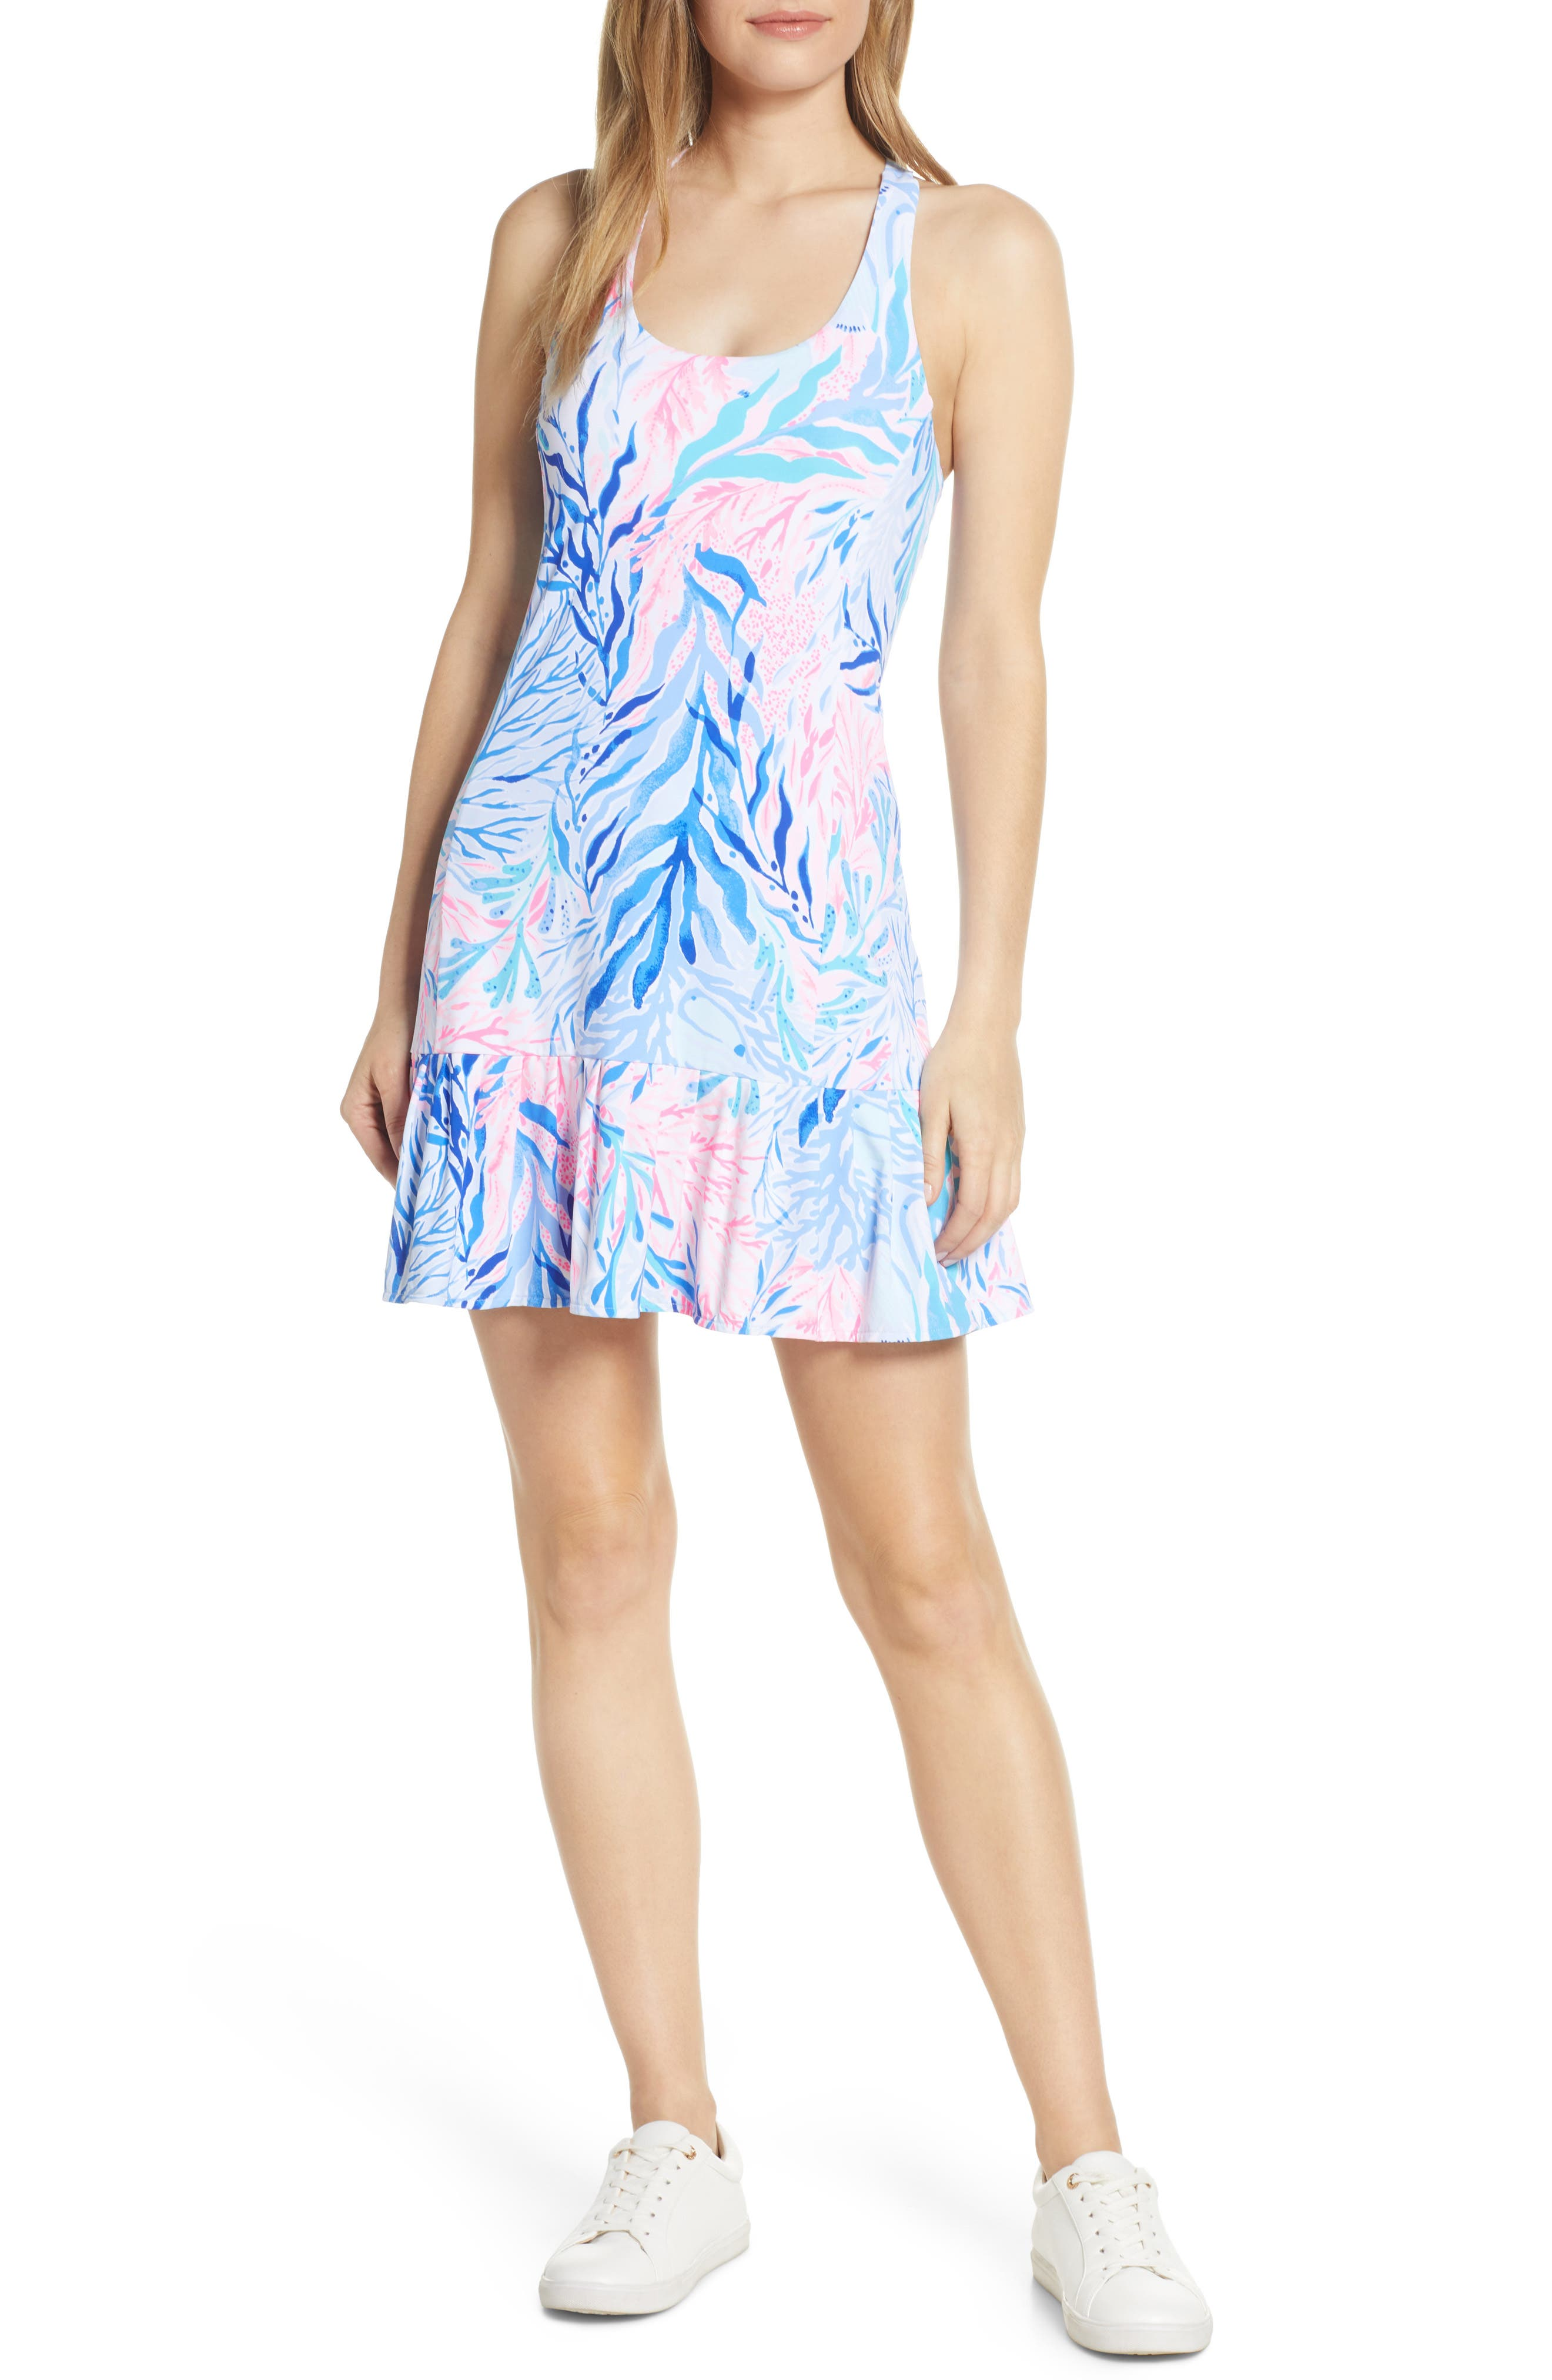 e6f38b21822b27 Lilly Pulitzer Luxletic Meryl Upf 50+ Ace Tennis Dress & Shorts Set, Blue